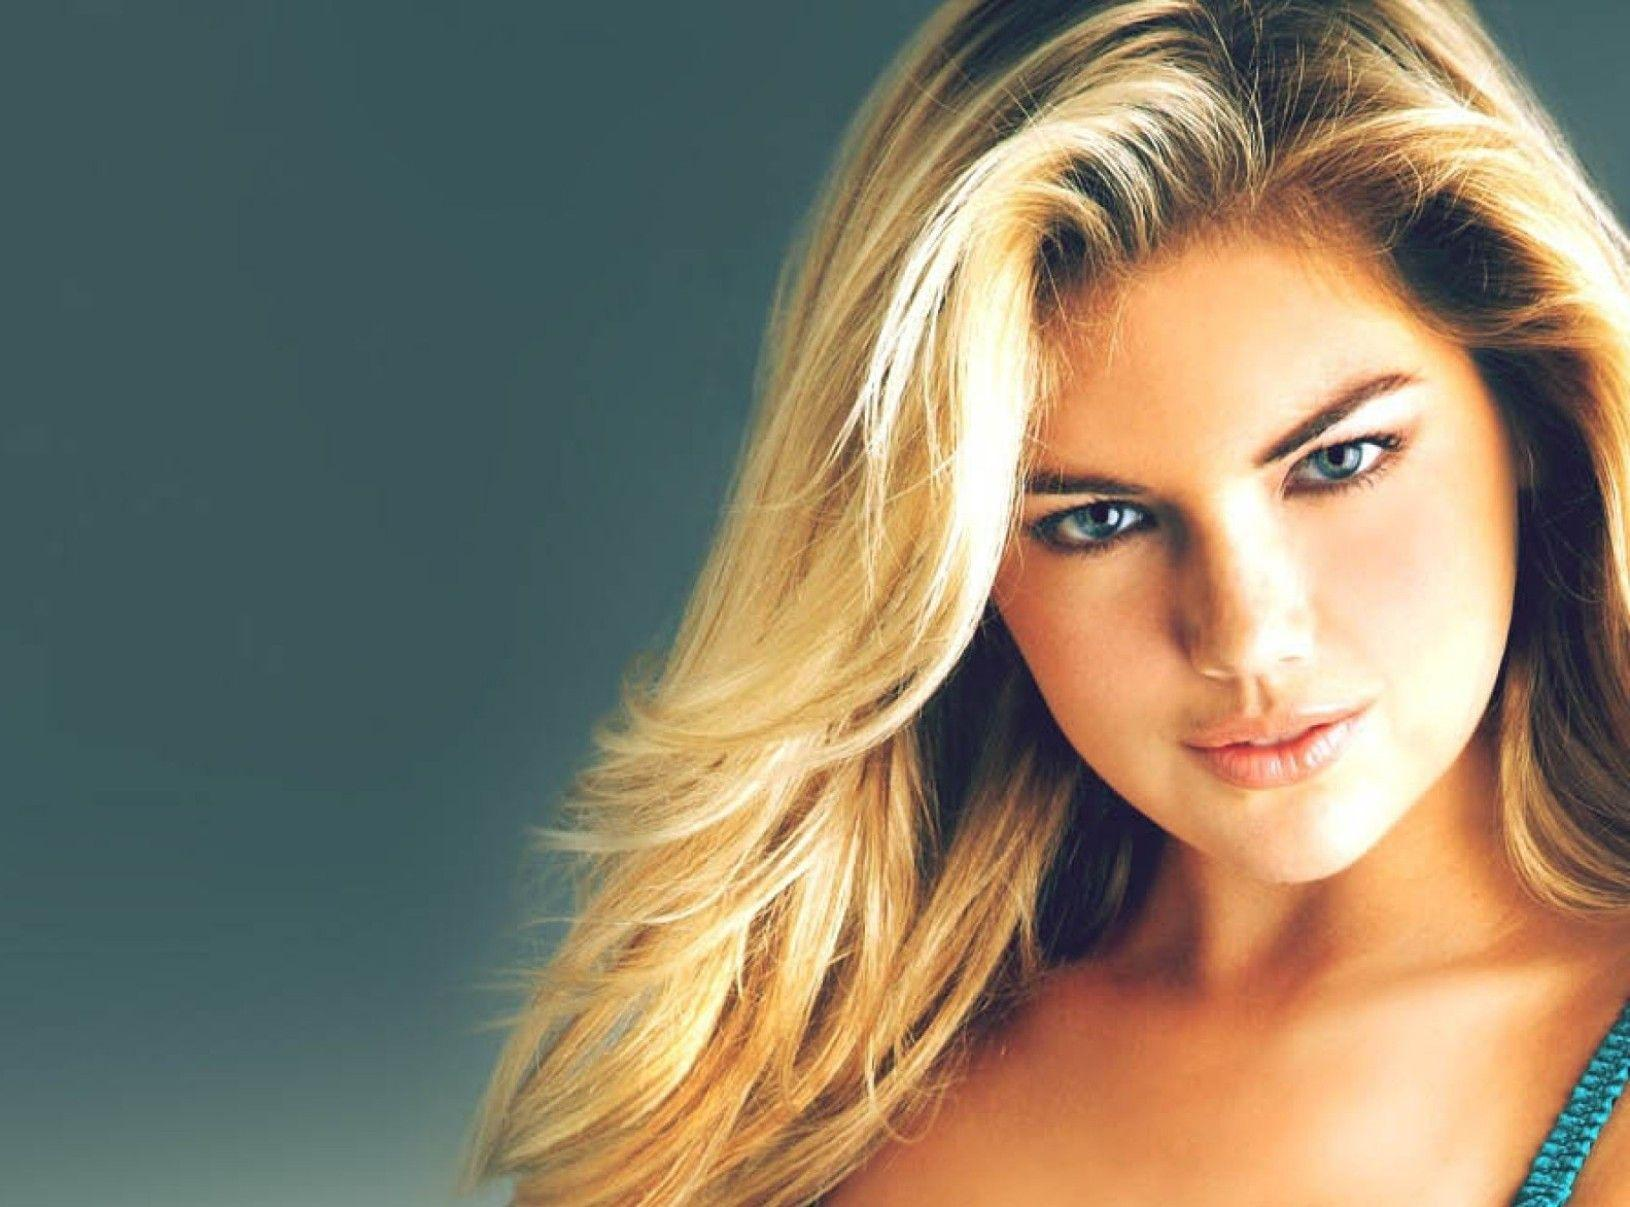 kate upton wallpaper download - photo #9